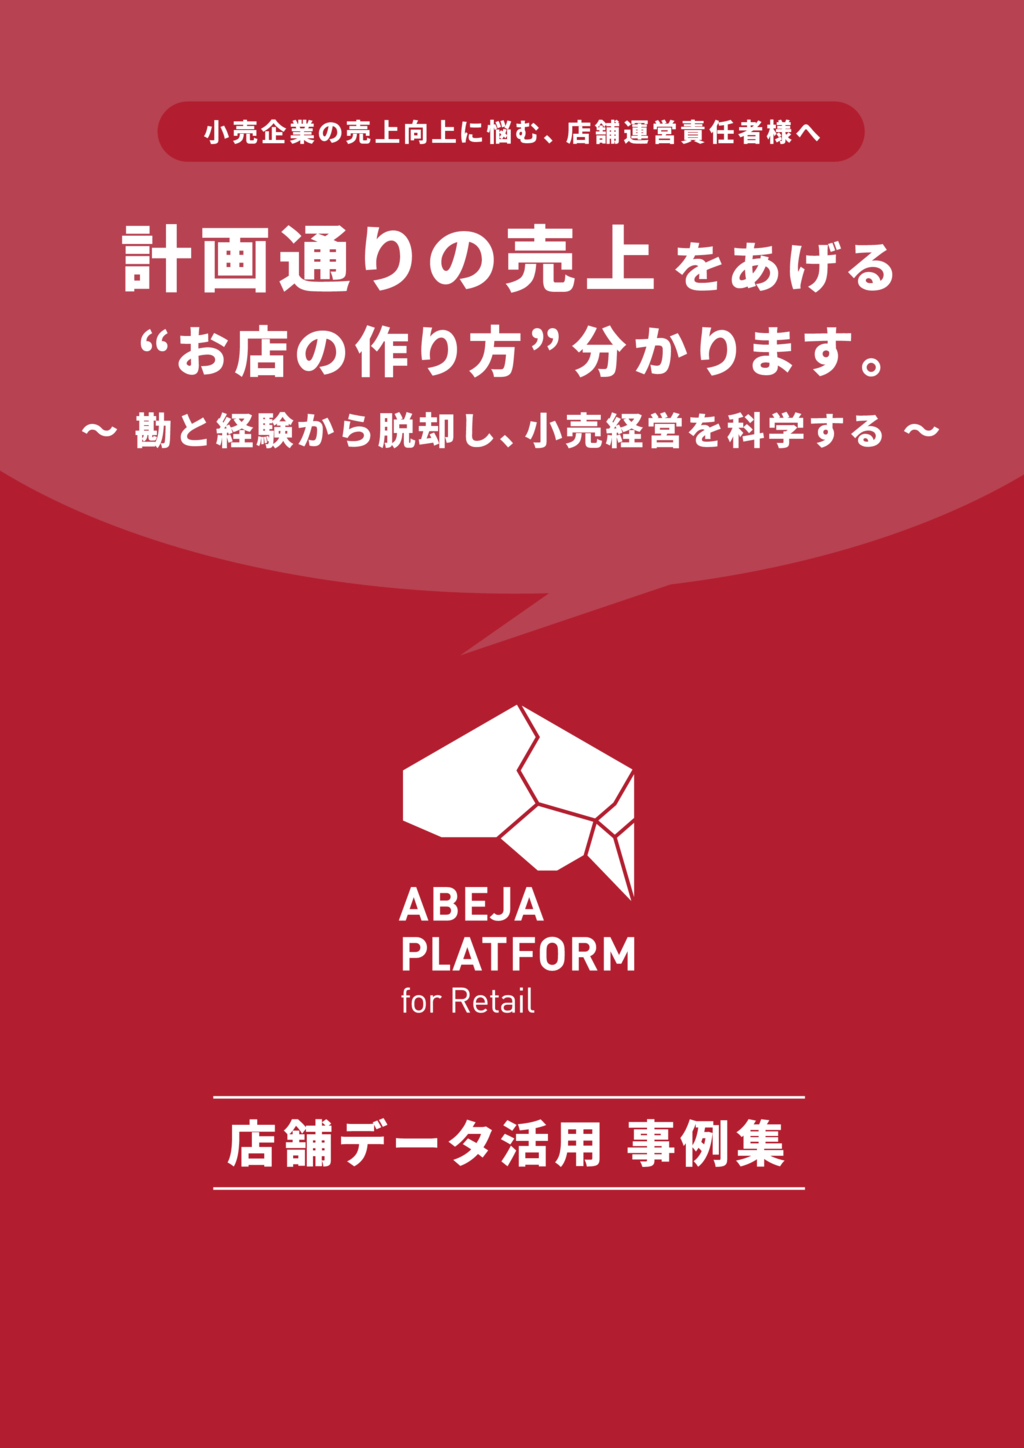 ABEJA Platform for Retailの資料